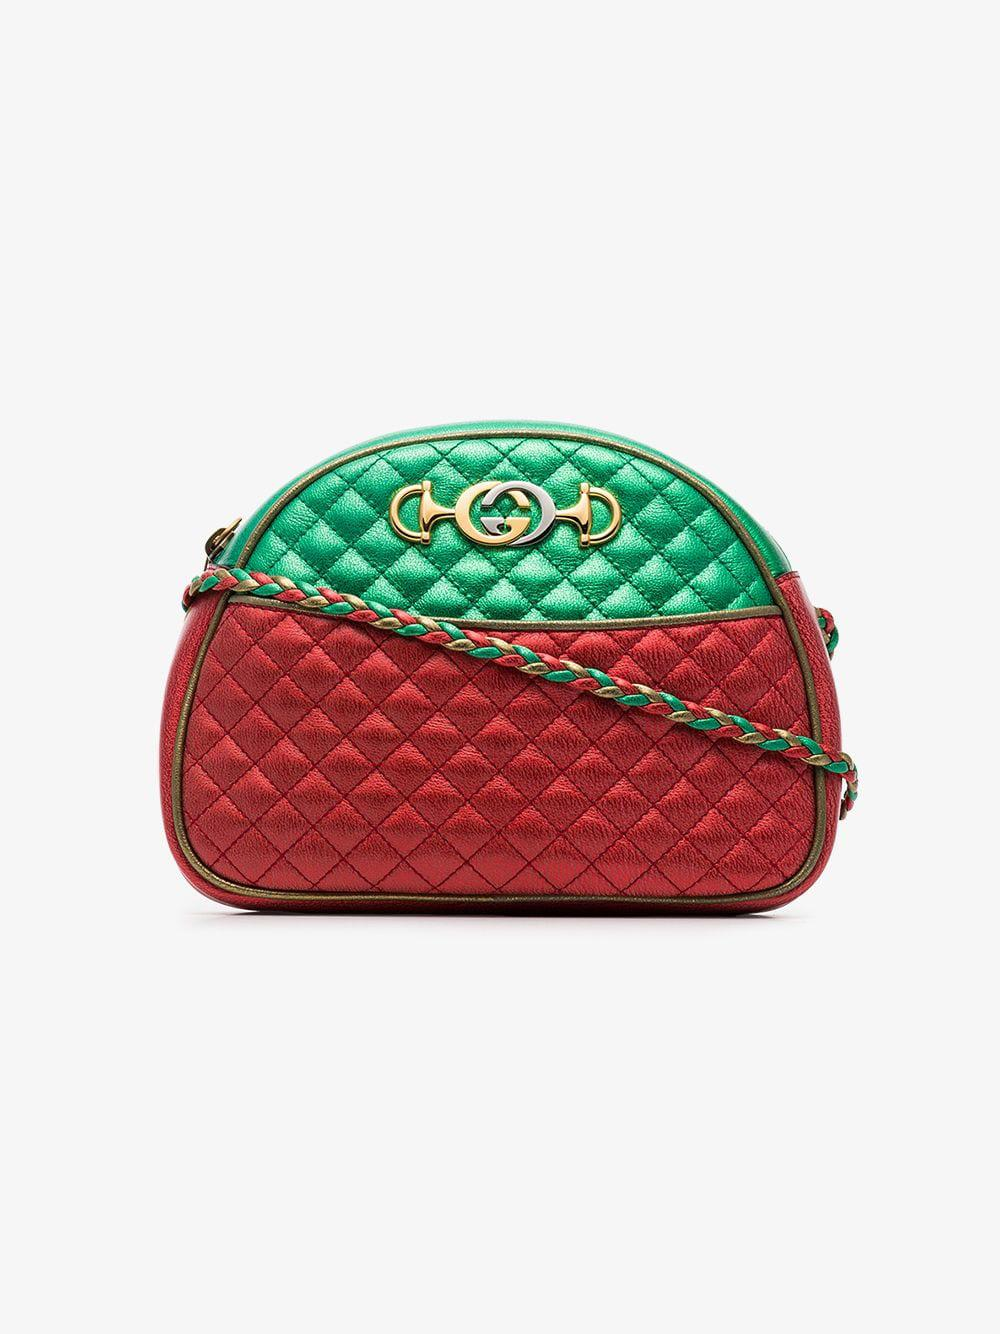 9224d114533 Gucci. Women s Red And Green Trapuntata Quilted Metallic Leather Cross Body  Bag